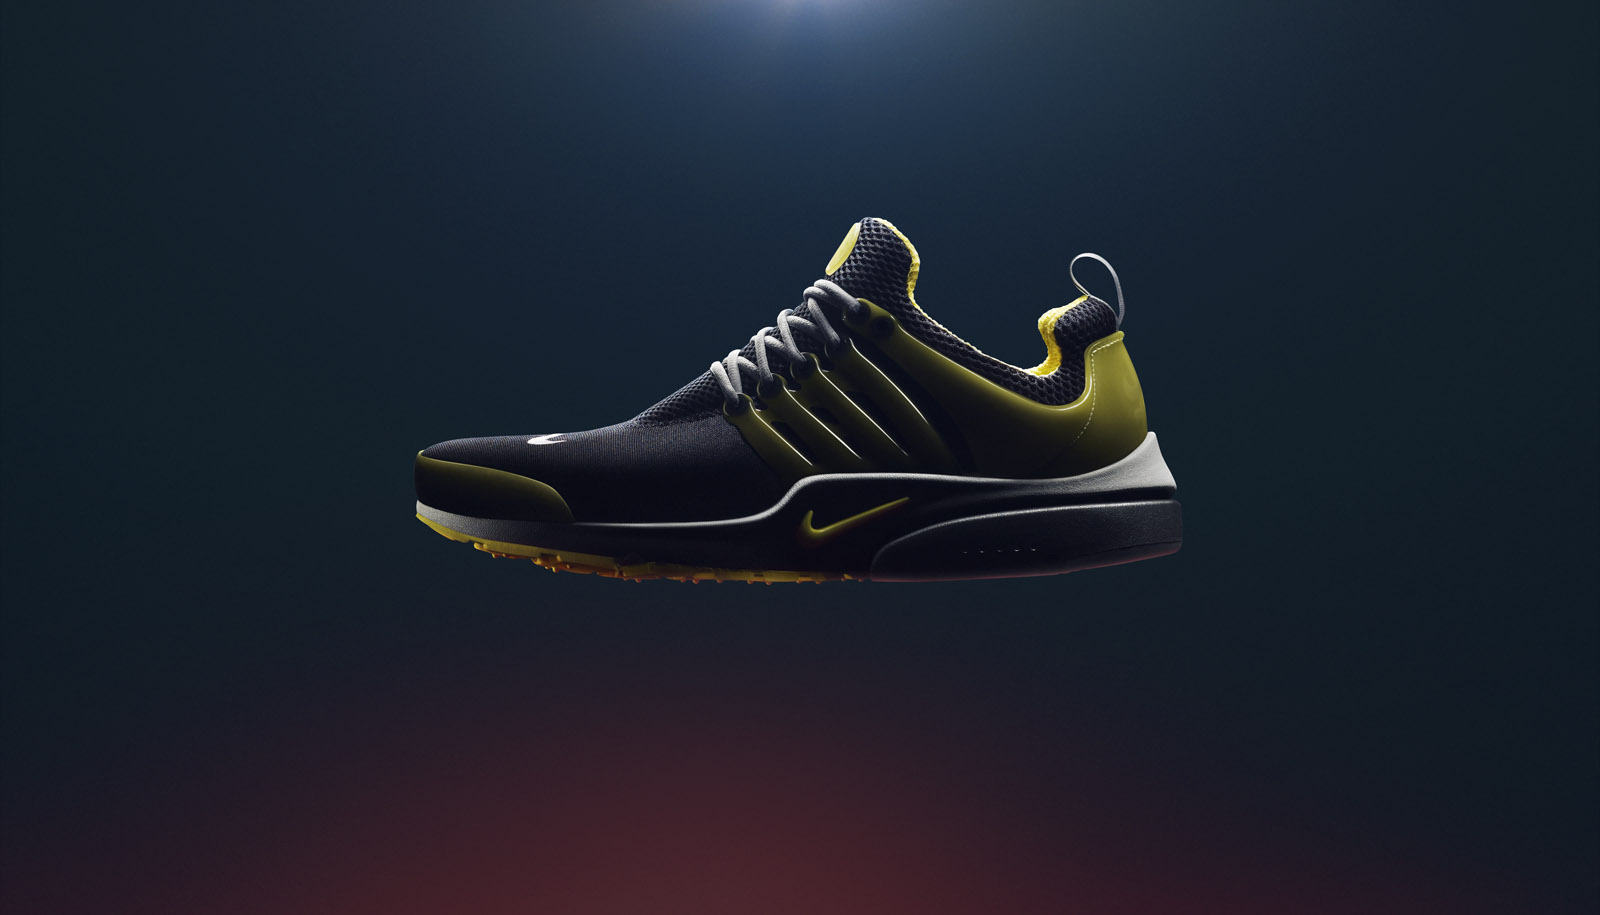 GOF_ORIGINAL_AIR_PRESTO_PROFILE_Hi.jpg